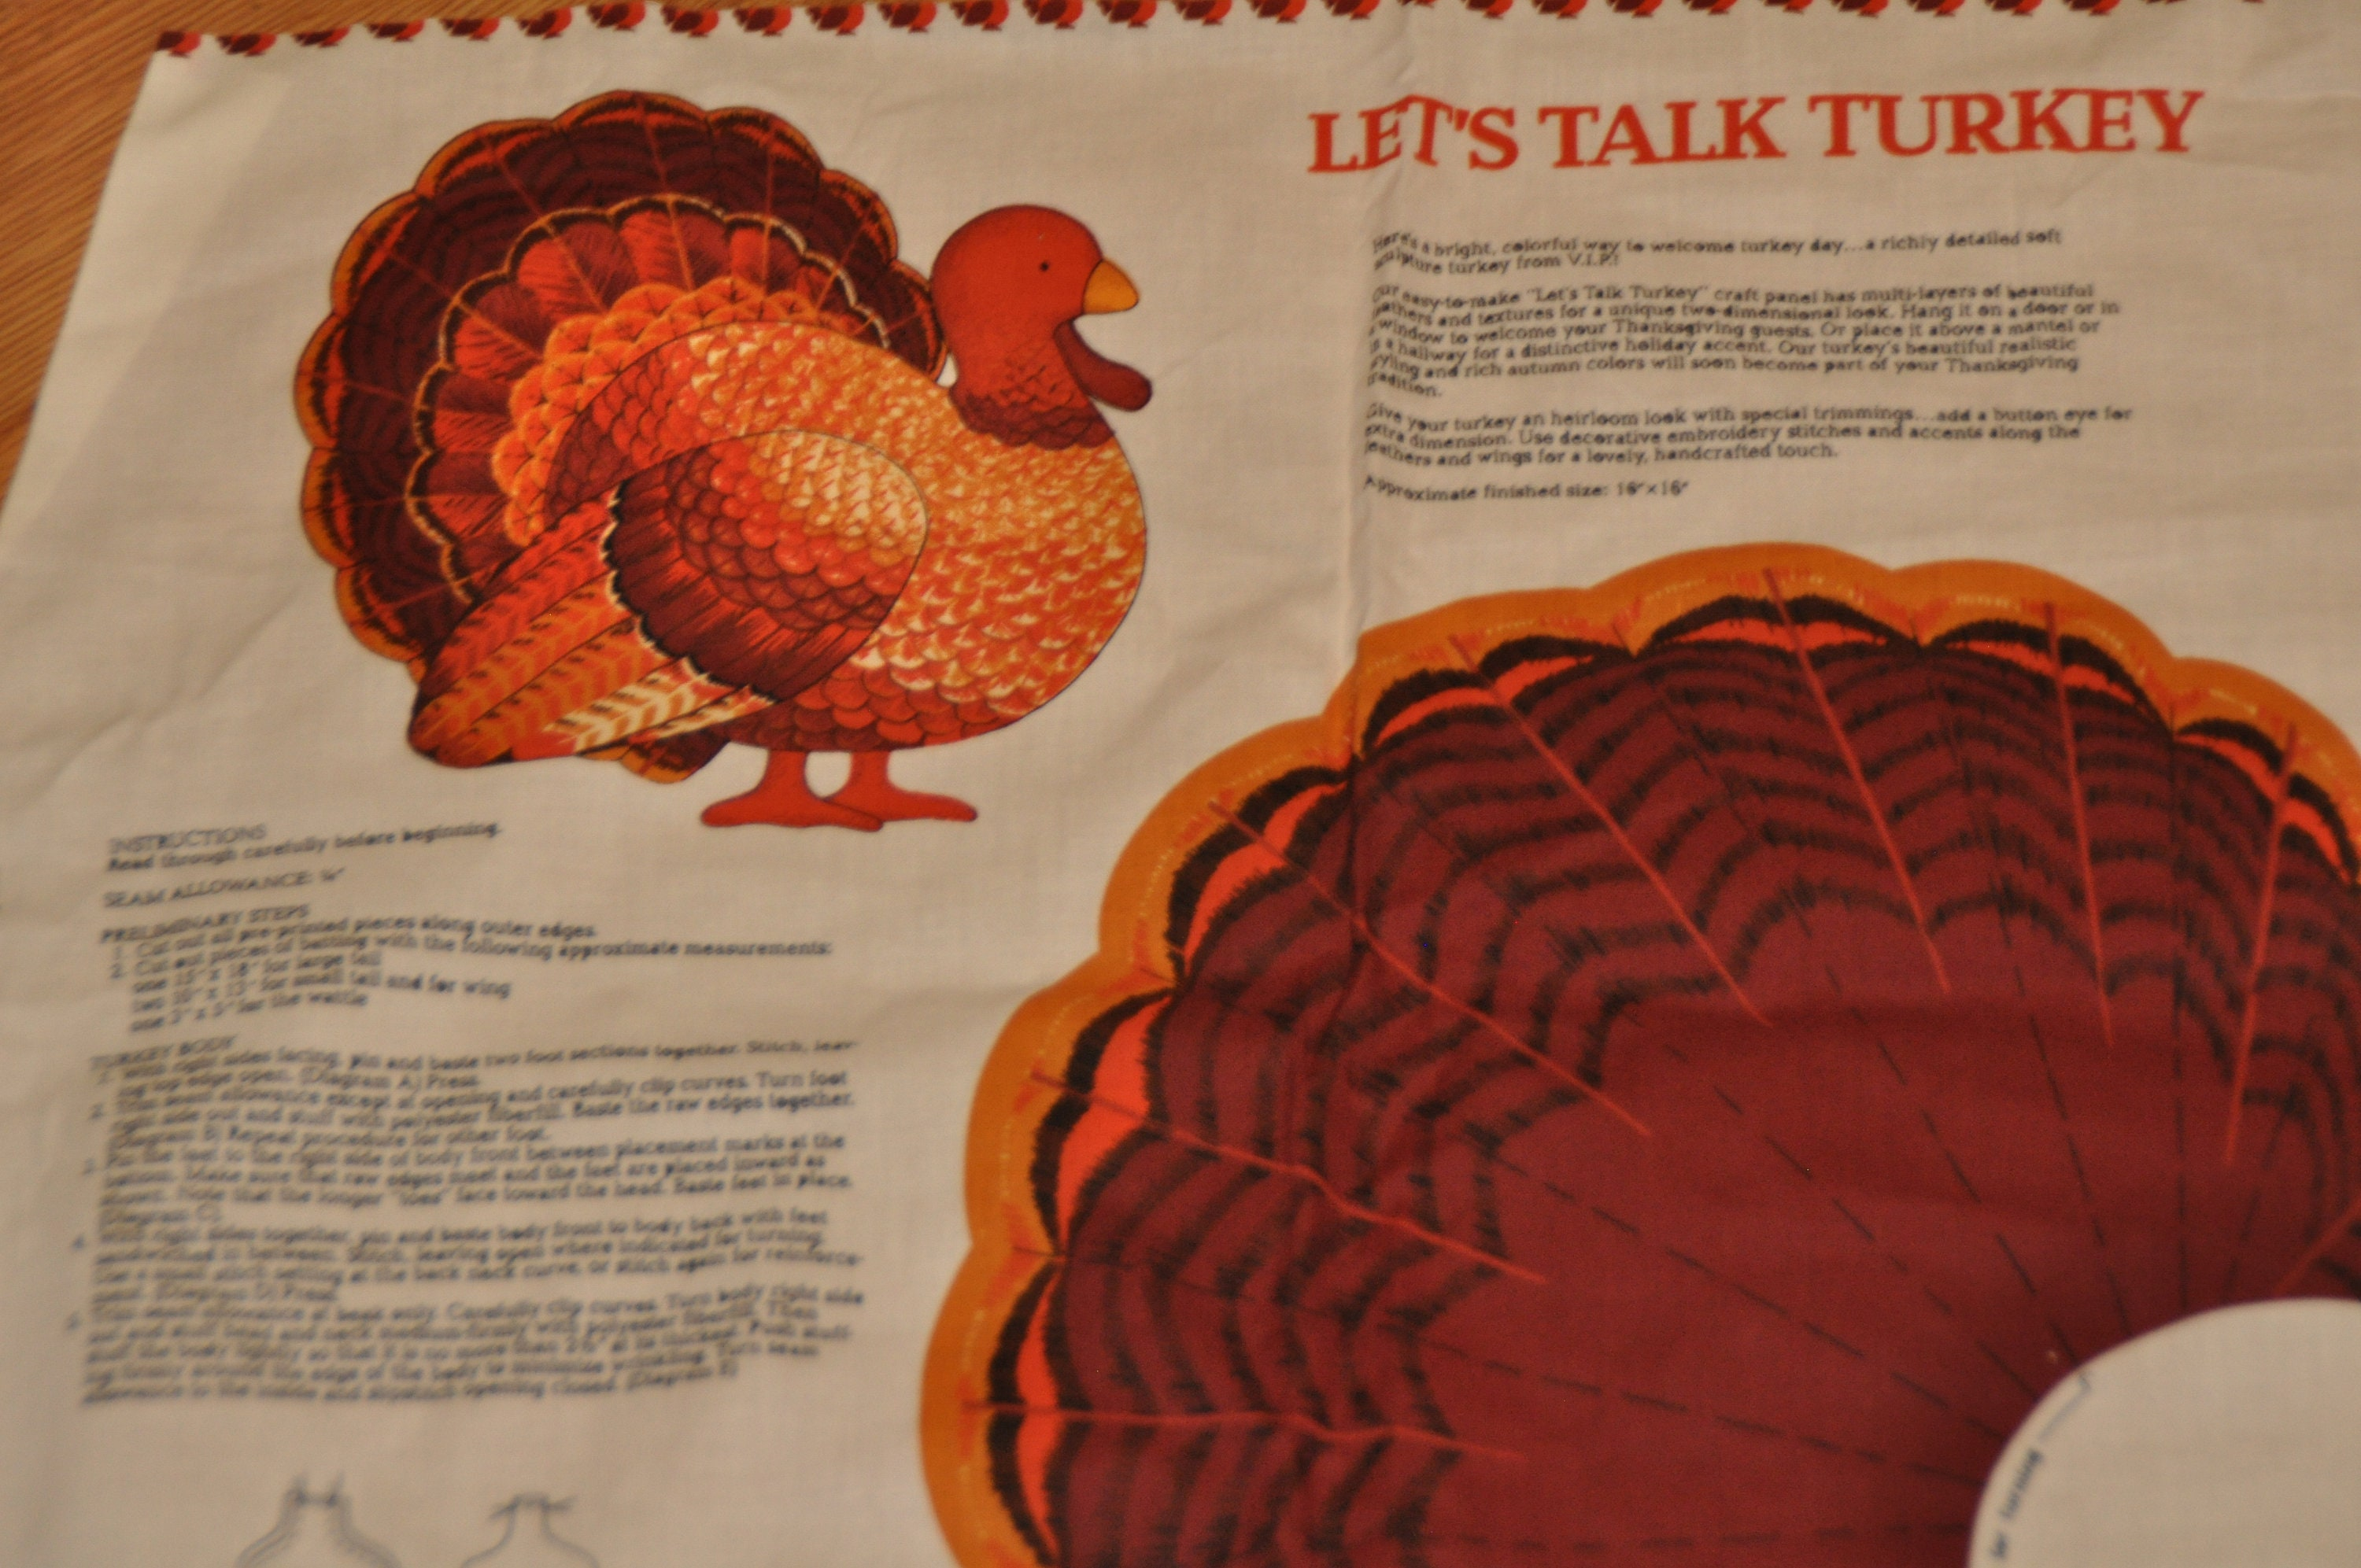 Turkey - Door or Wall Hanging - Cut and Sew - Fabric Panel - Approx  16